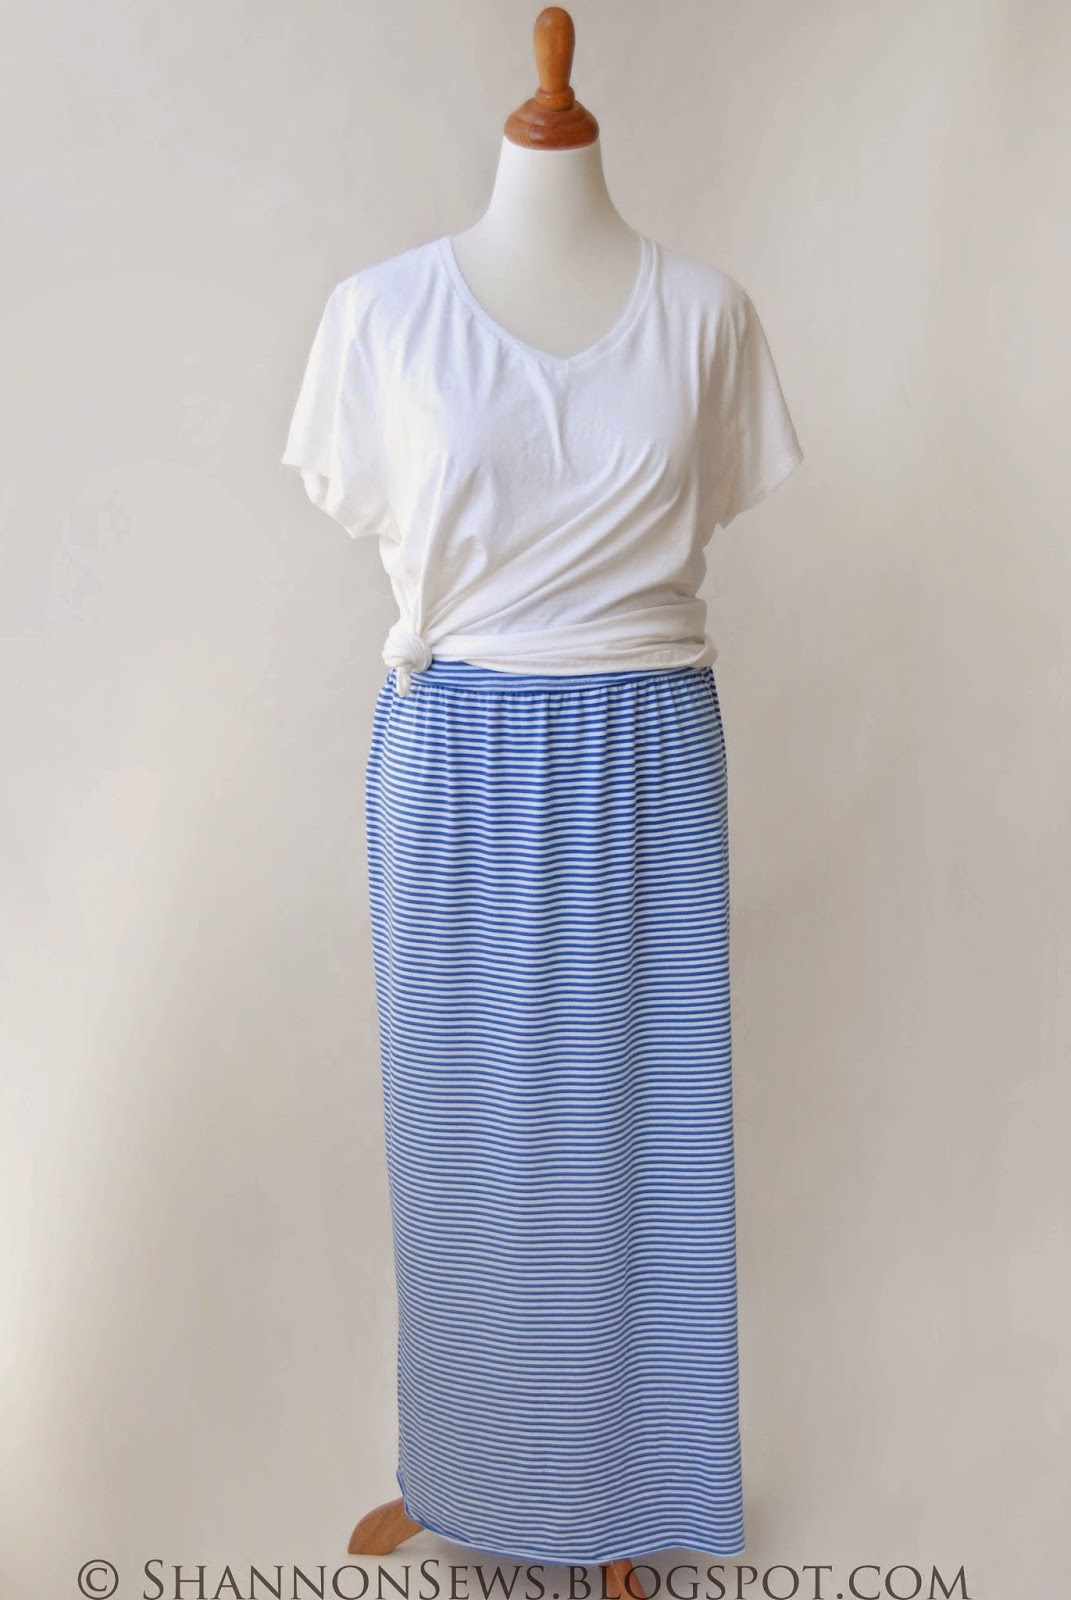 sew a long skirt flowy for summer, jersey knit